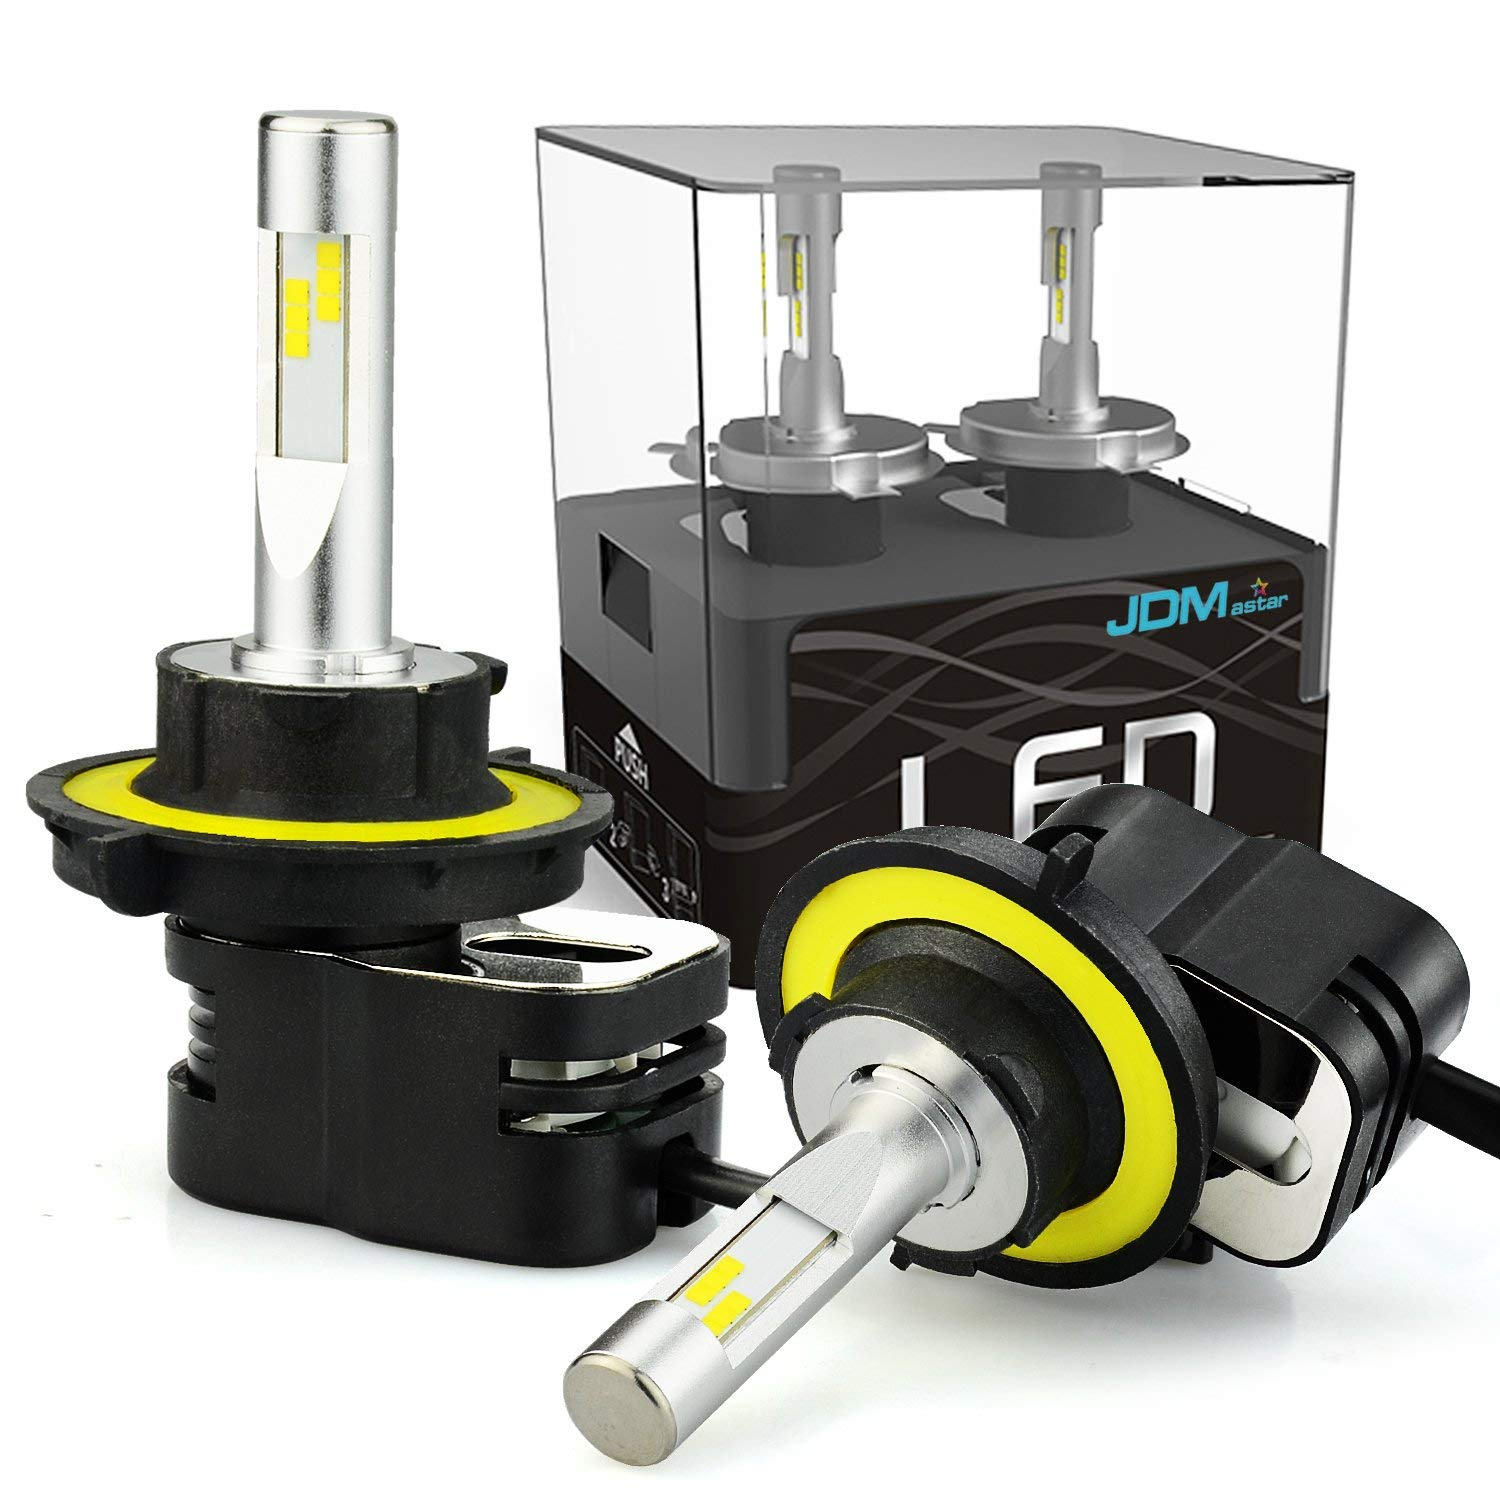 Xenon White JDM ASTAR Mini Design 10000 Lumens Extremely Bright H11 H8 H16 All-in-One LED Headlight Bulbs Conversion Kit for Limit Space with an Adjustable Light Angel